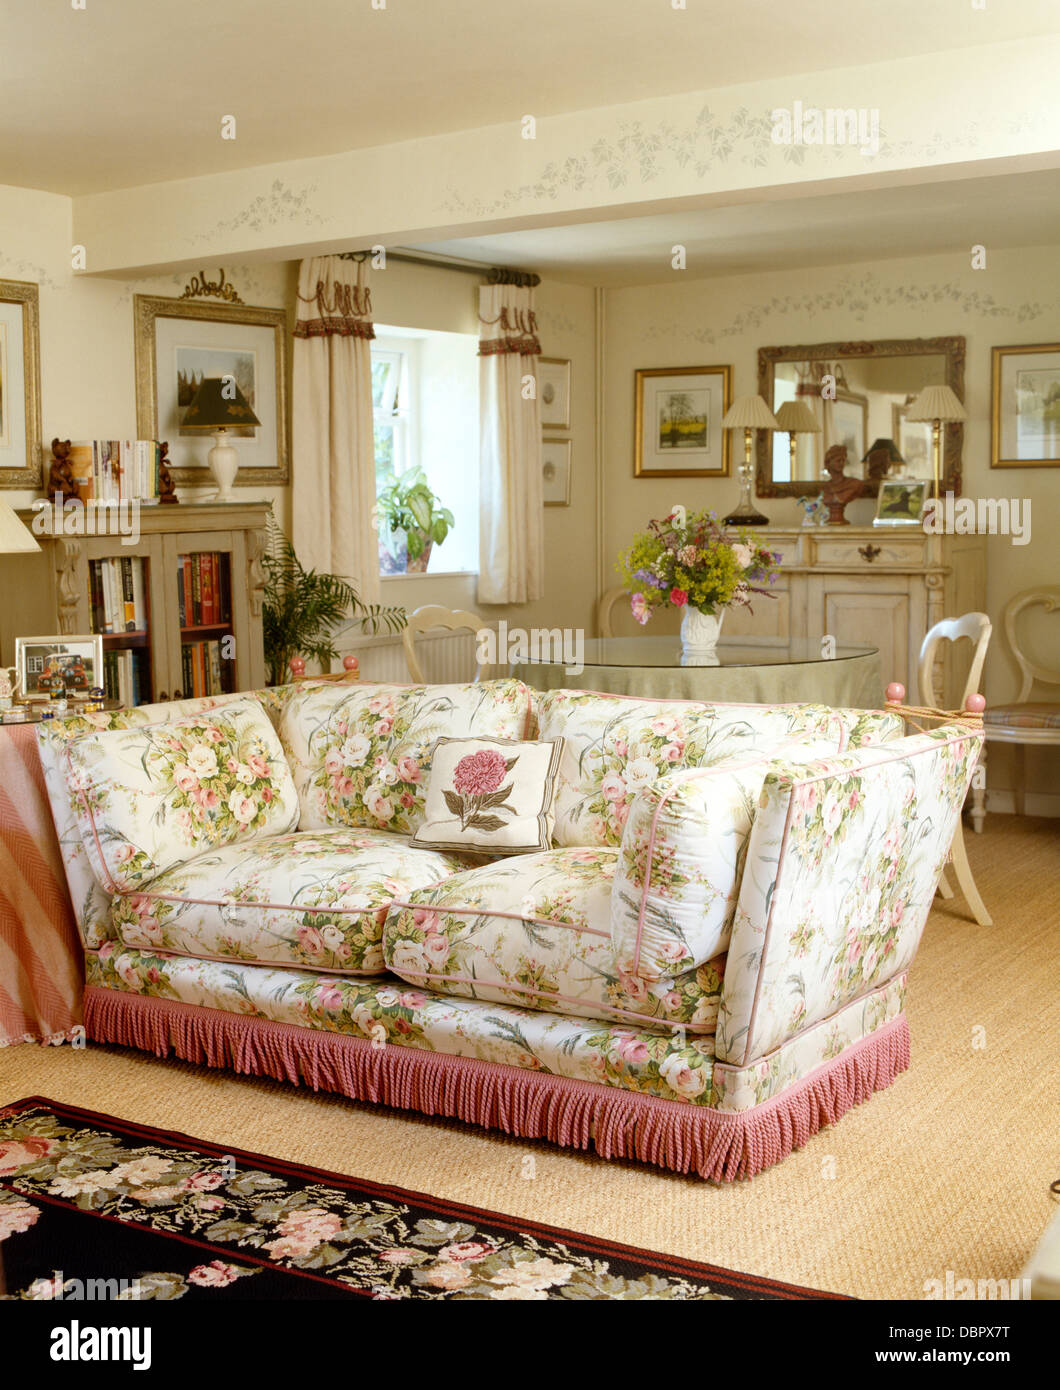 Floral sofa with pink fringed edging in cottage living and dining